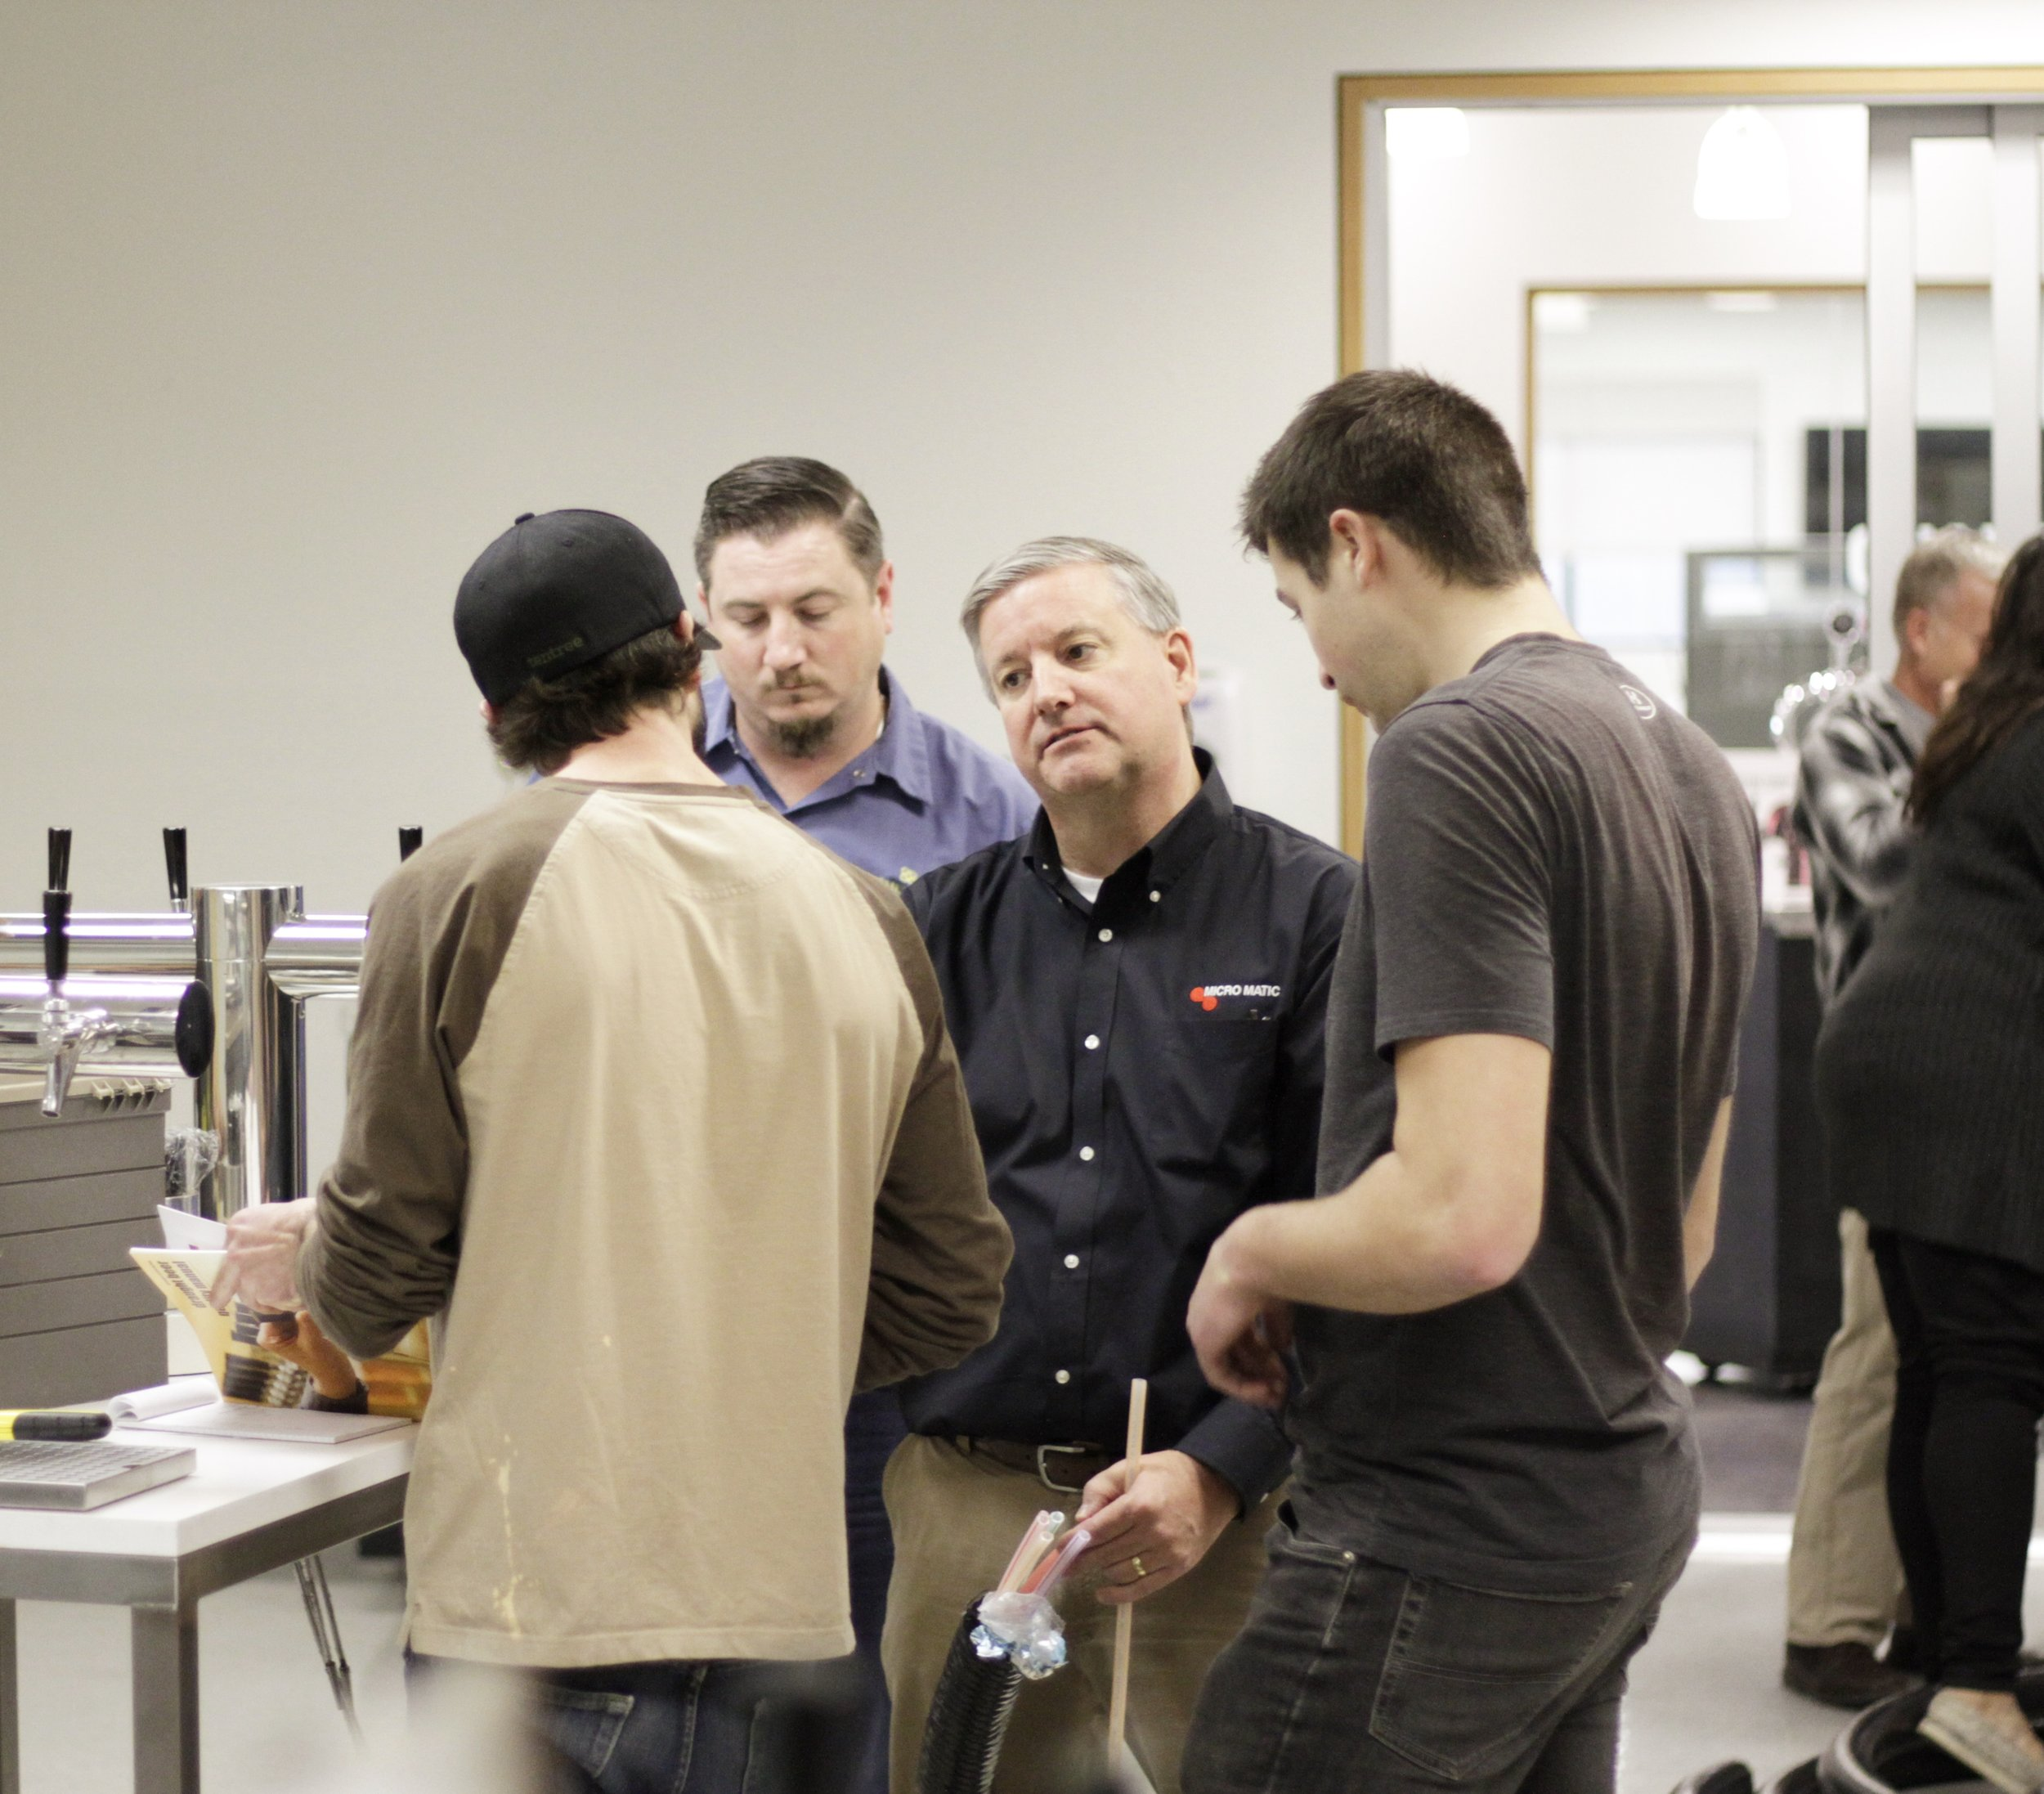 David Green of Micro Matic's Dispense Institute is stressing proper technique when running glycol.